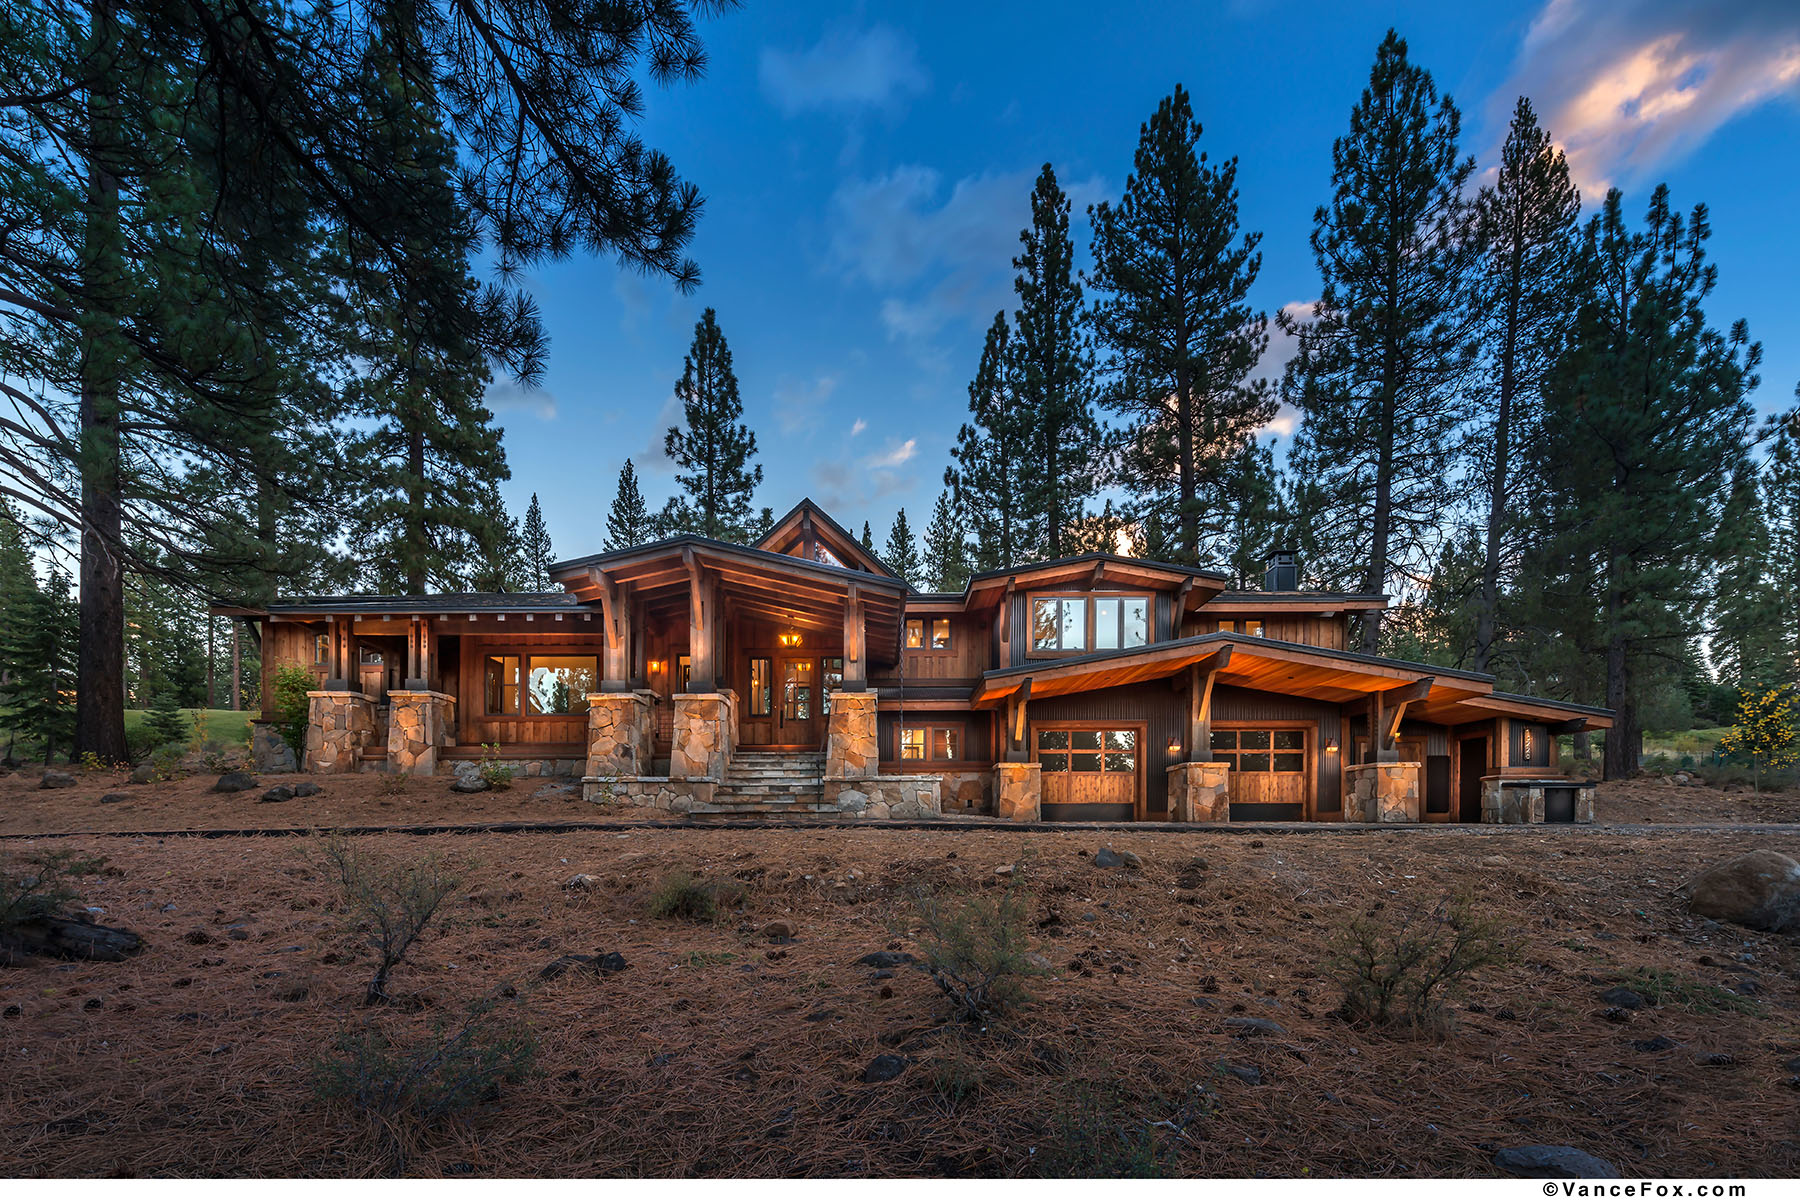 Property 为 销售 在 13228 Snowshoe Thompson Circle, Truckee, California 96161 13228 Snowshoe Thompson Circle 特拉基, 加利福尼亚州 96161 美国